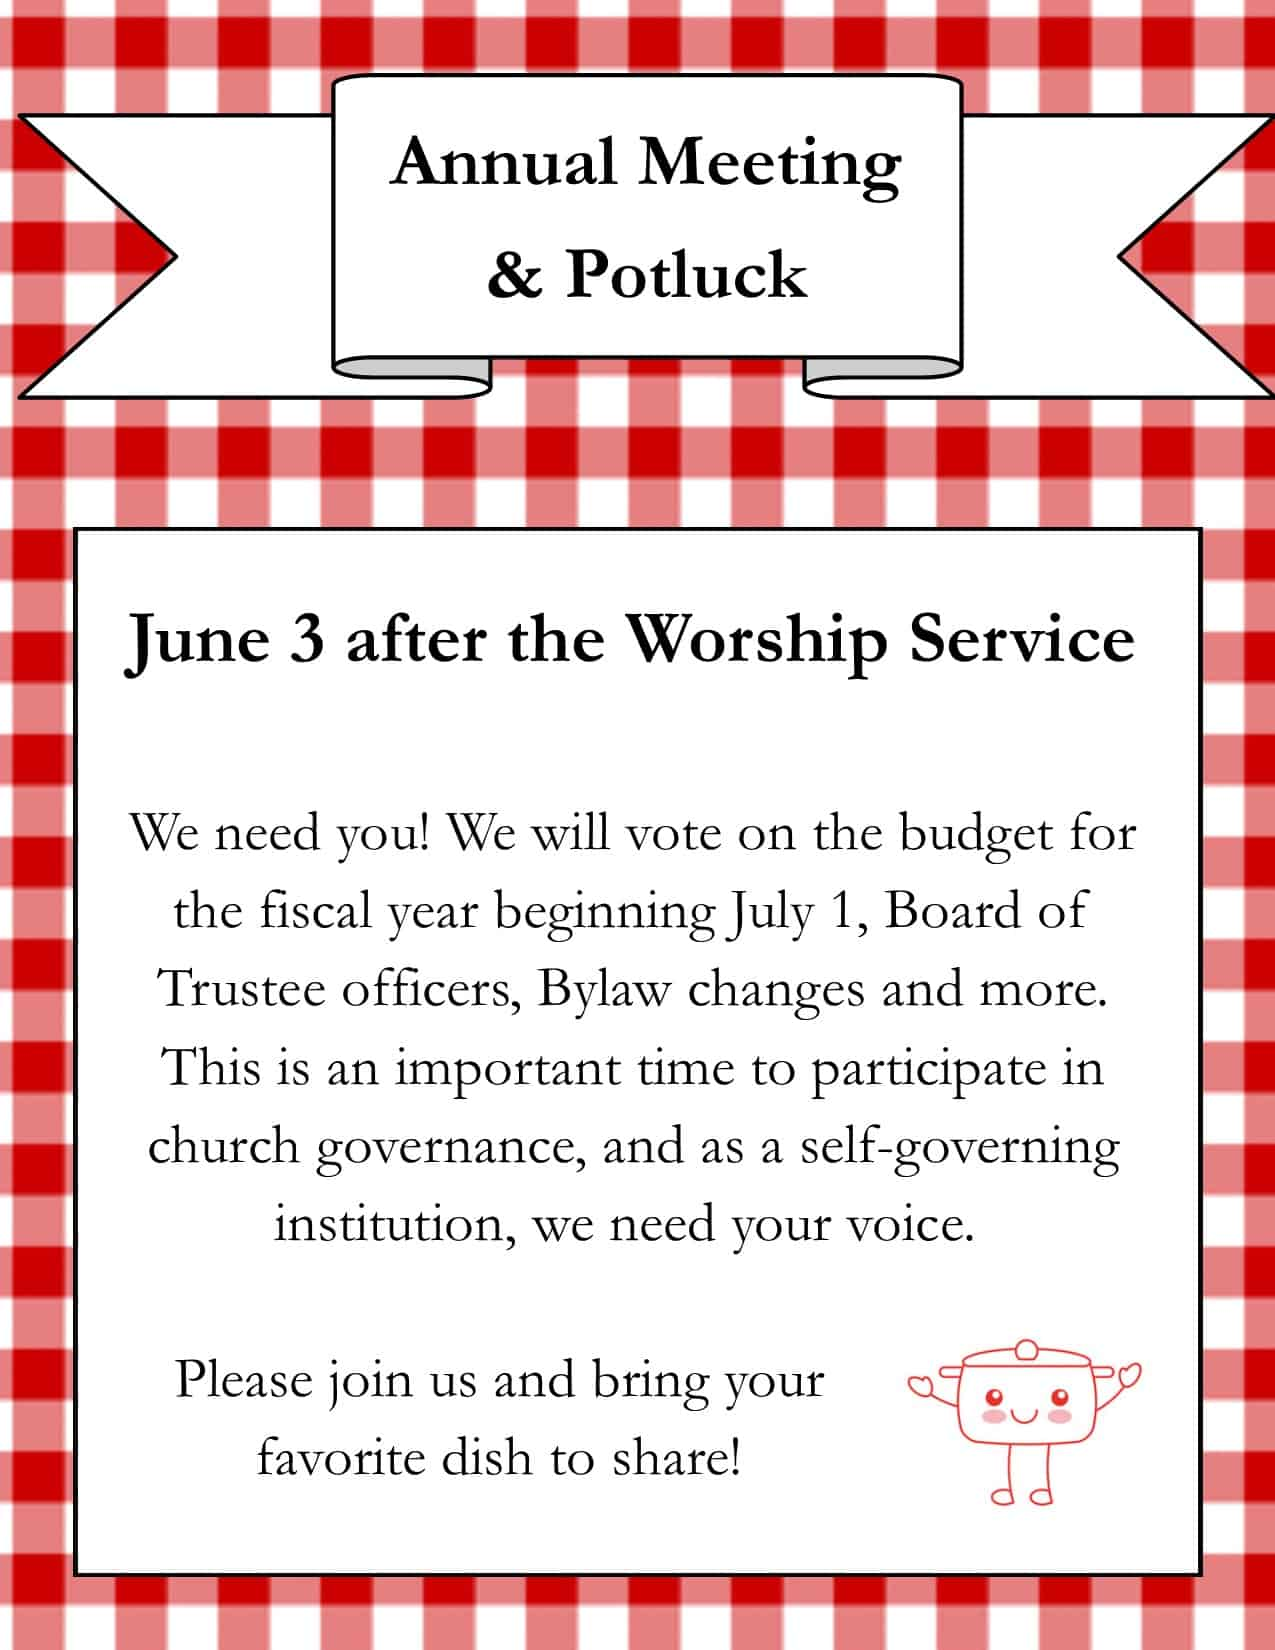 Annual Meeting and Potluck Flyer